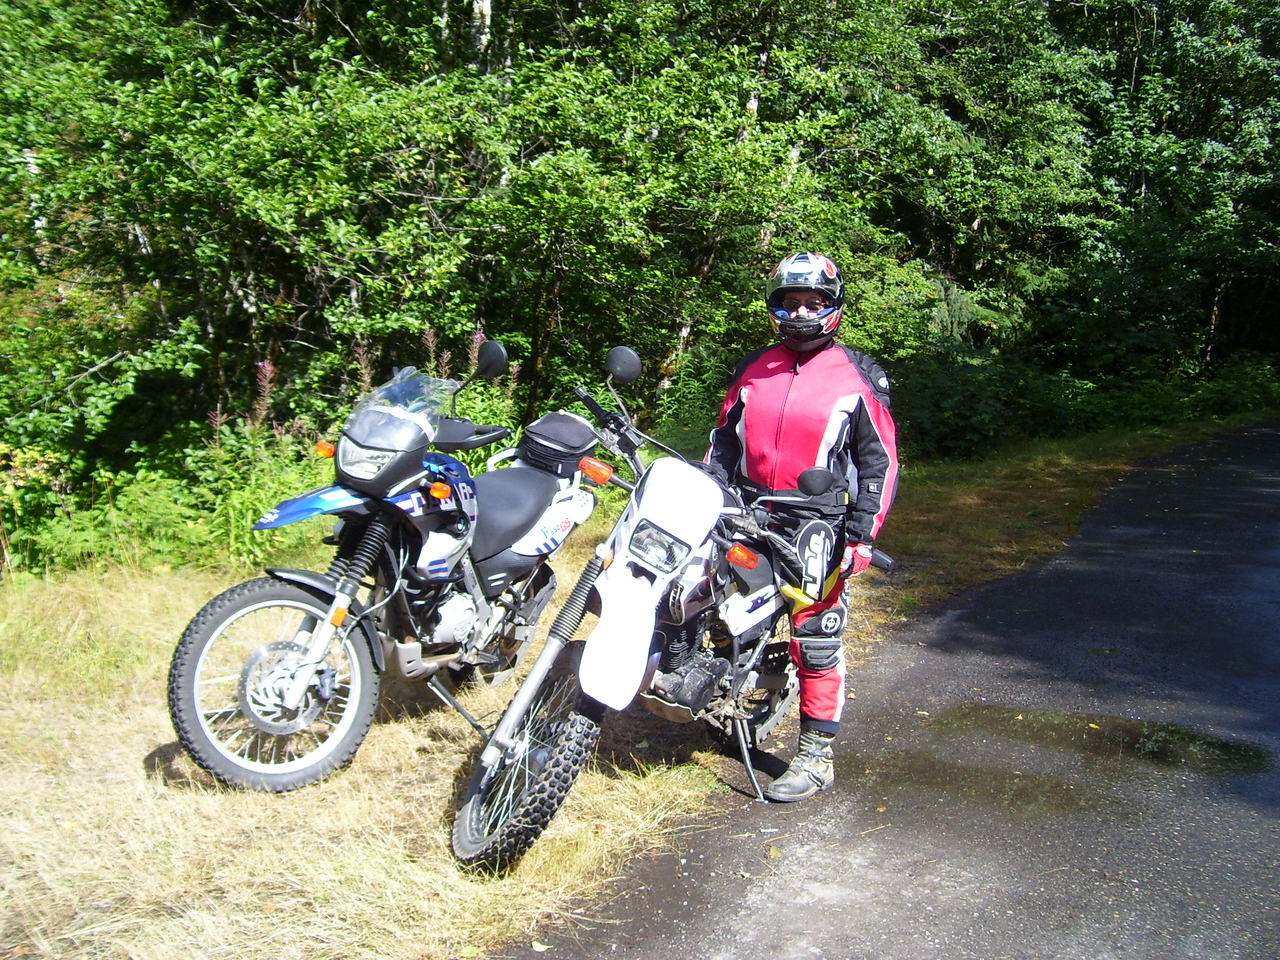 Riding the #23 road in GPNF.